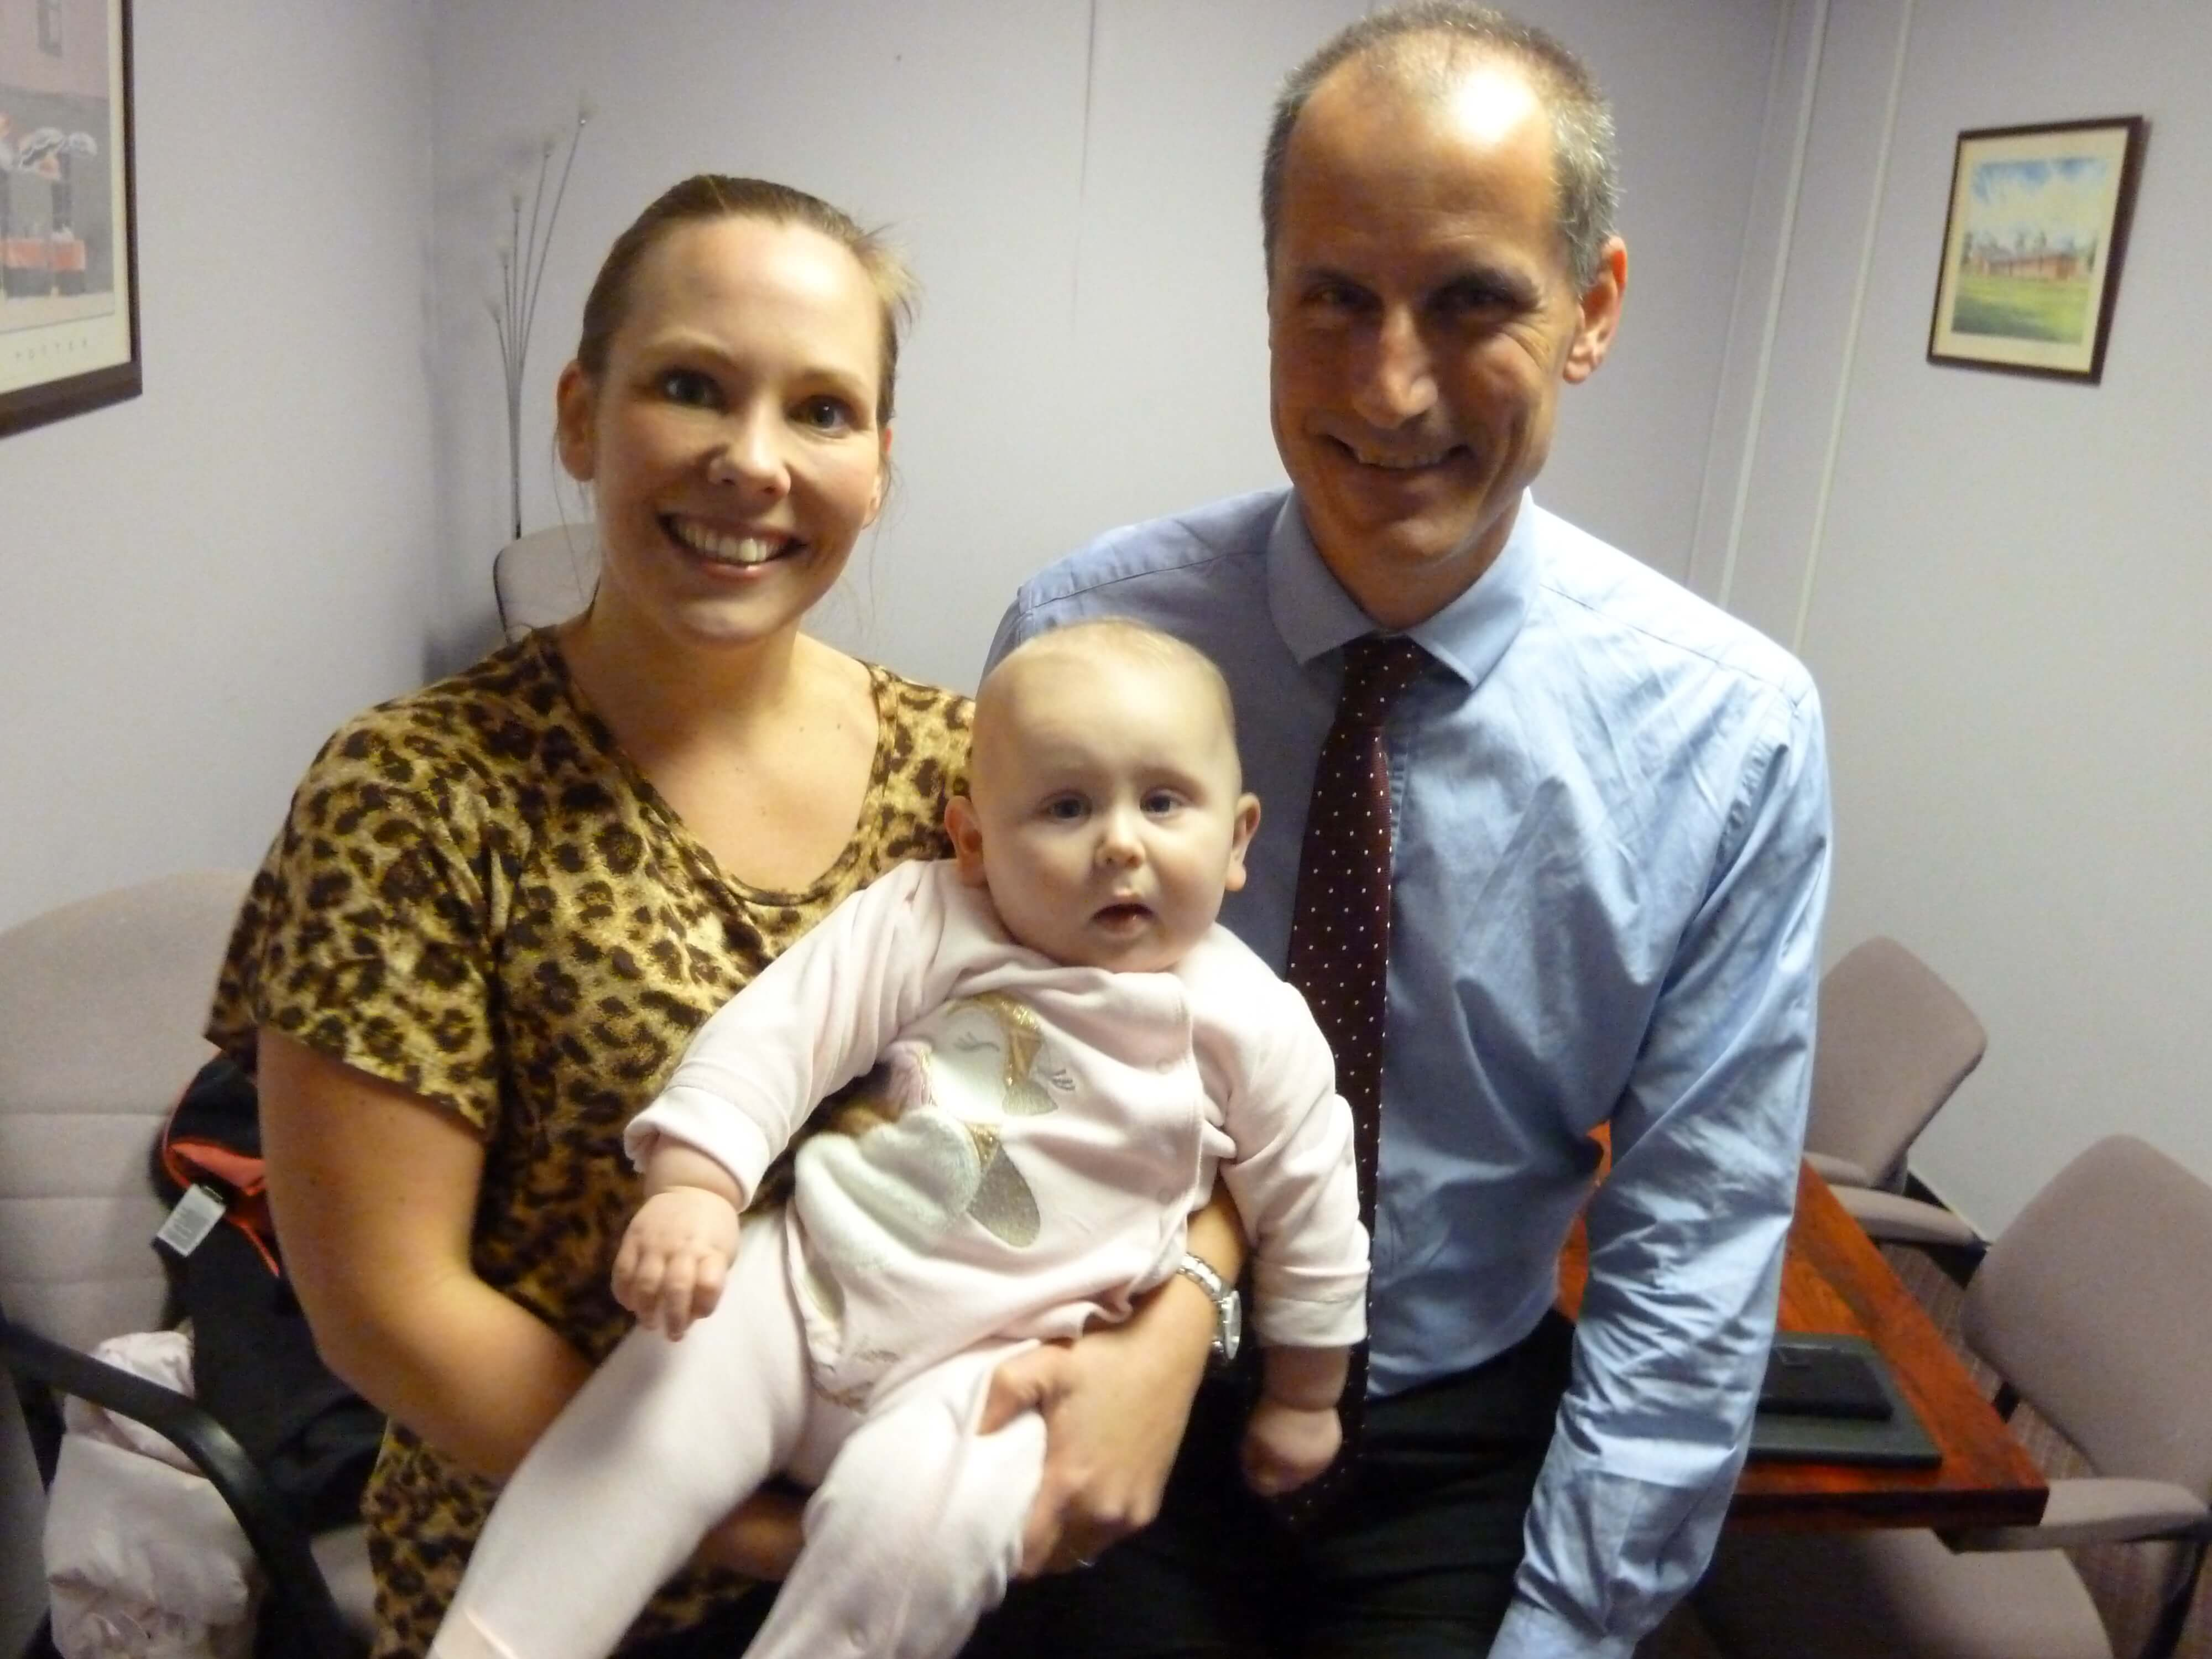 Labour MP Bill Esterson with eight-month-old Summer and mother Jasmine Jimbris.